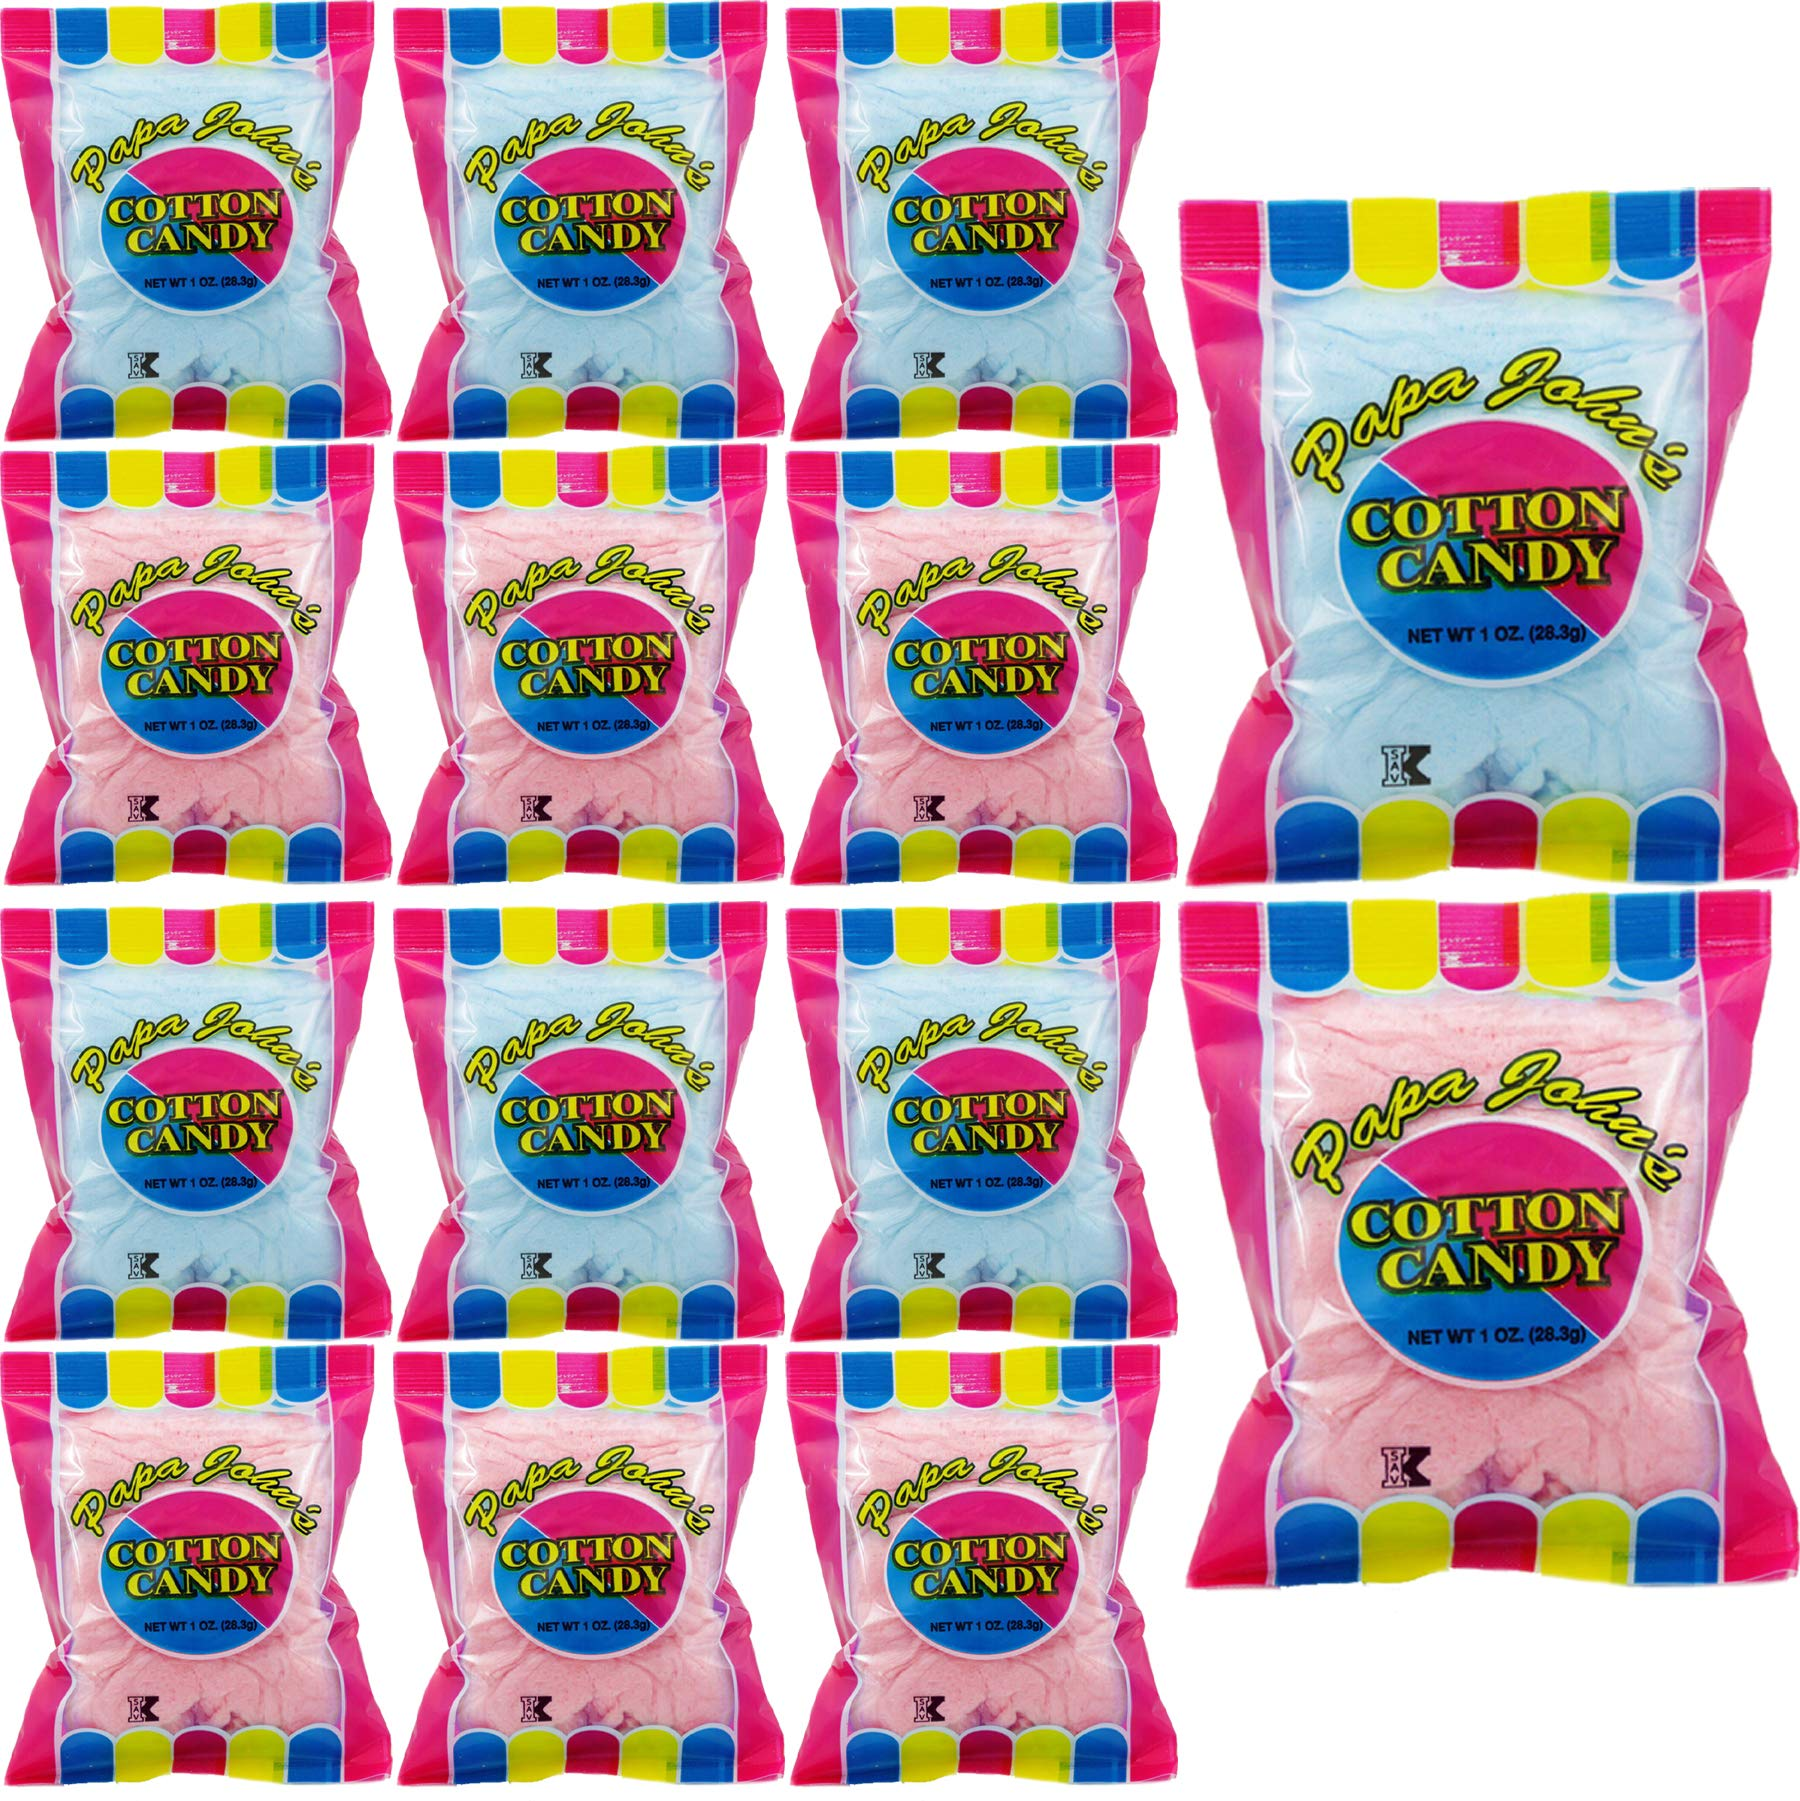 Papa John's Cotton Candy Blue and Pink Party Flavors Supplies Birthday Treats for Kids, Kosher, 1oz Bag (12-Pack) by Papa John's (Image #1)